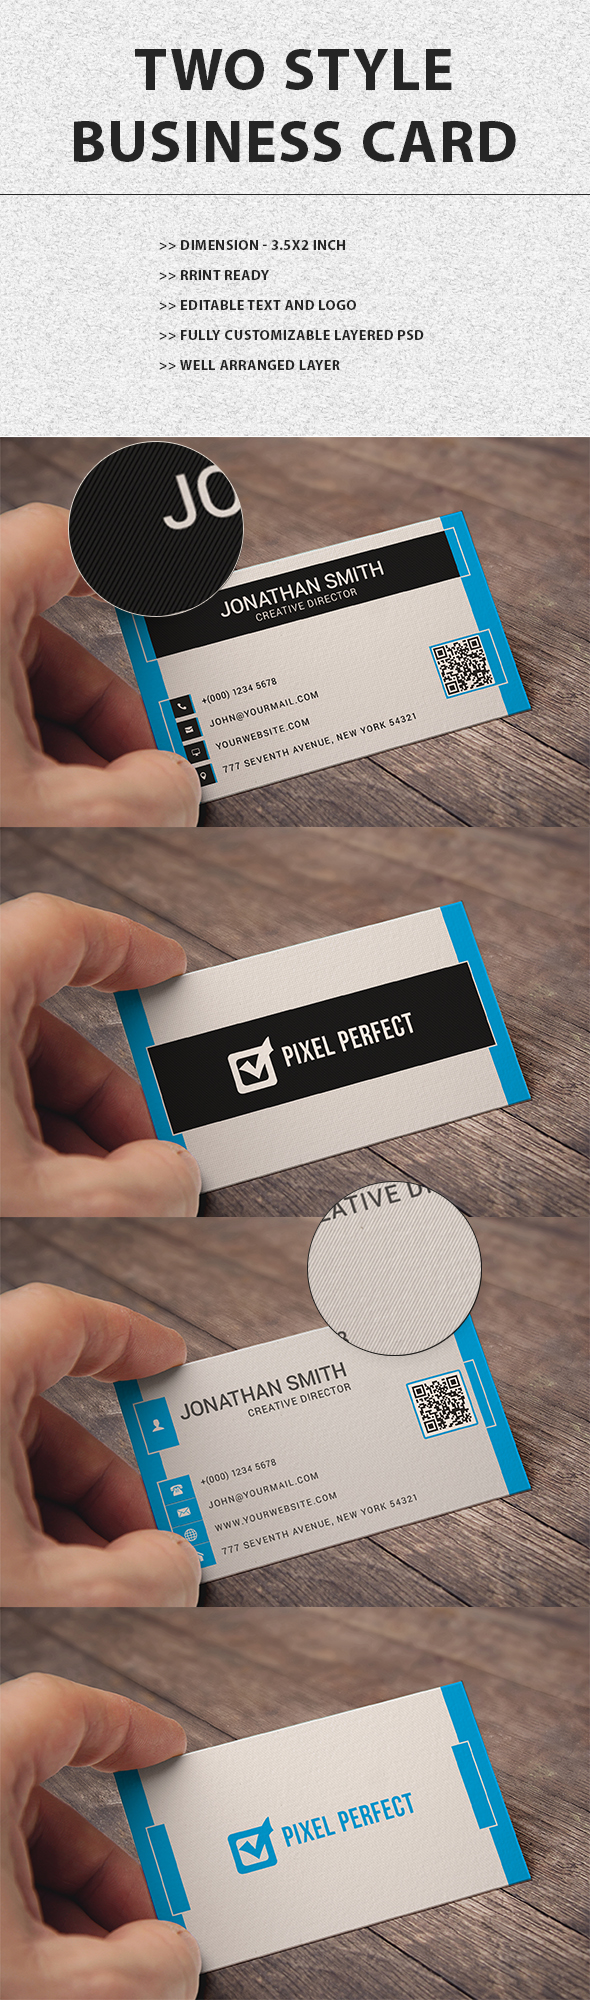 Free Psd Business card 2in1 by maruf1